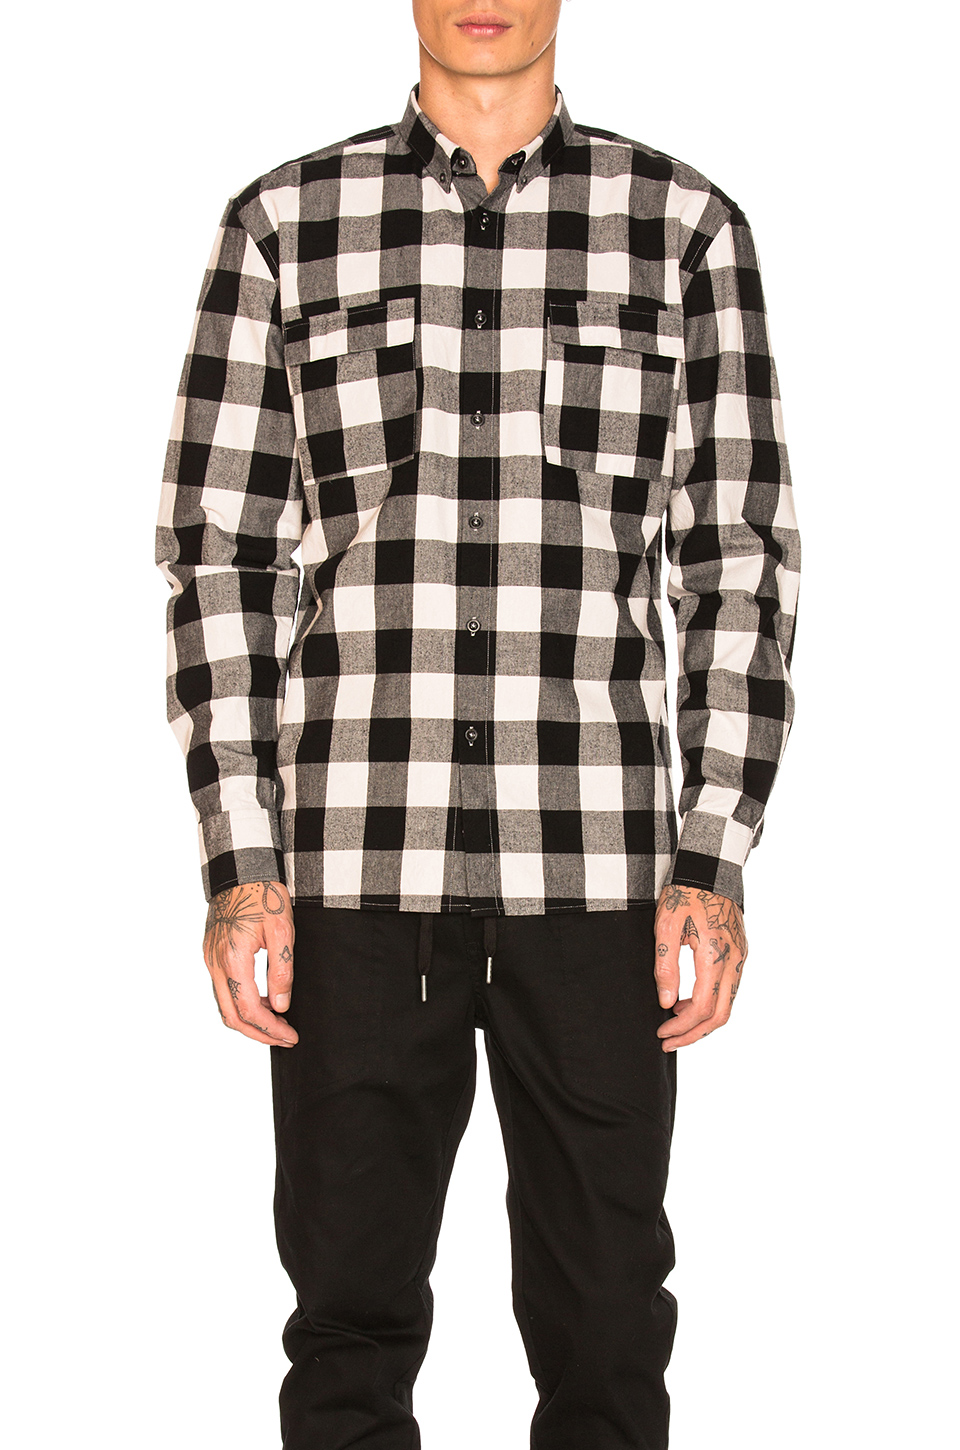 Zanerobe Flannel Box Longsleeve Shirt in Black & Natural